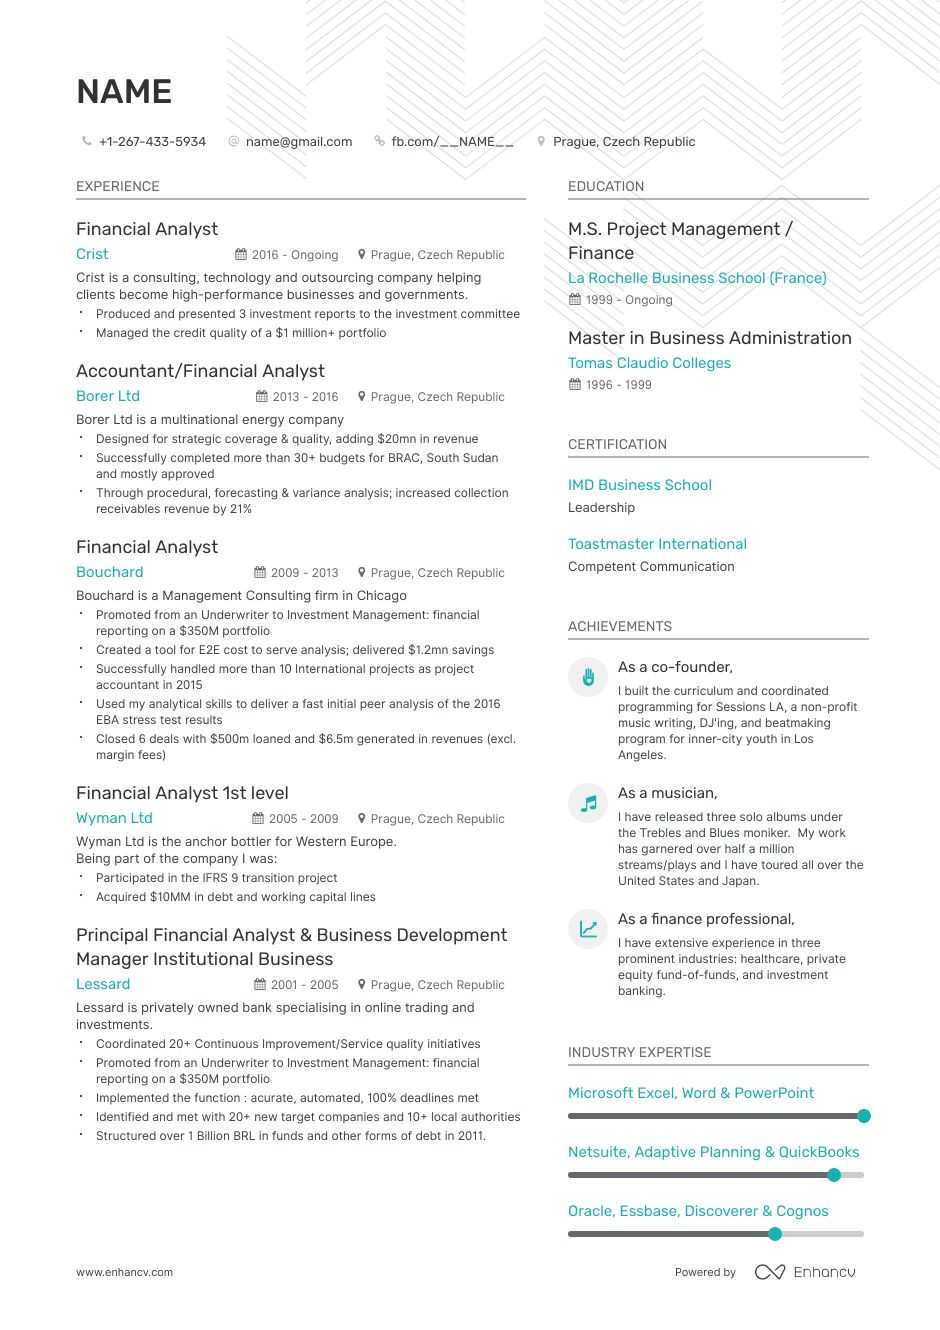 entrylevel financial analyst resume examples skills